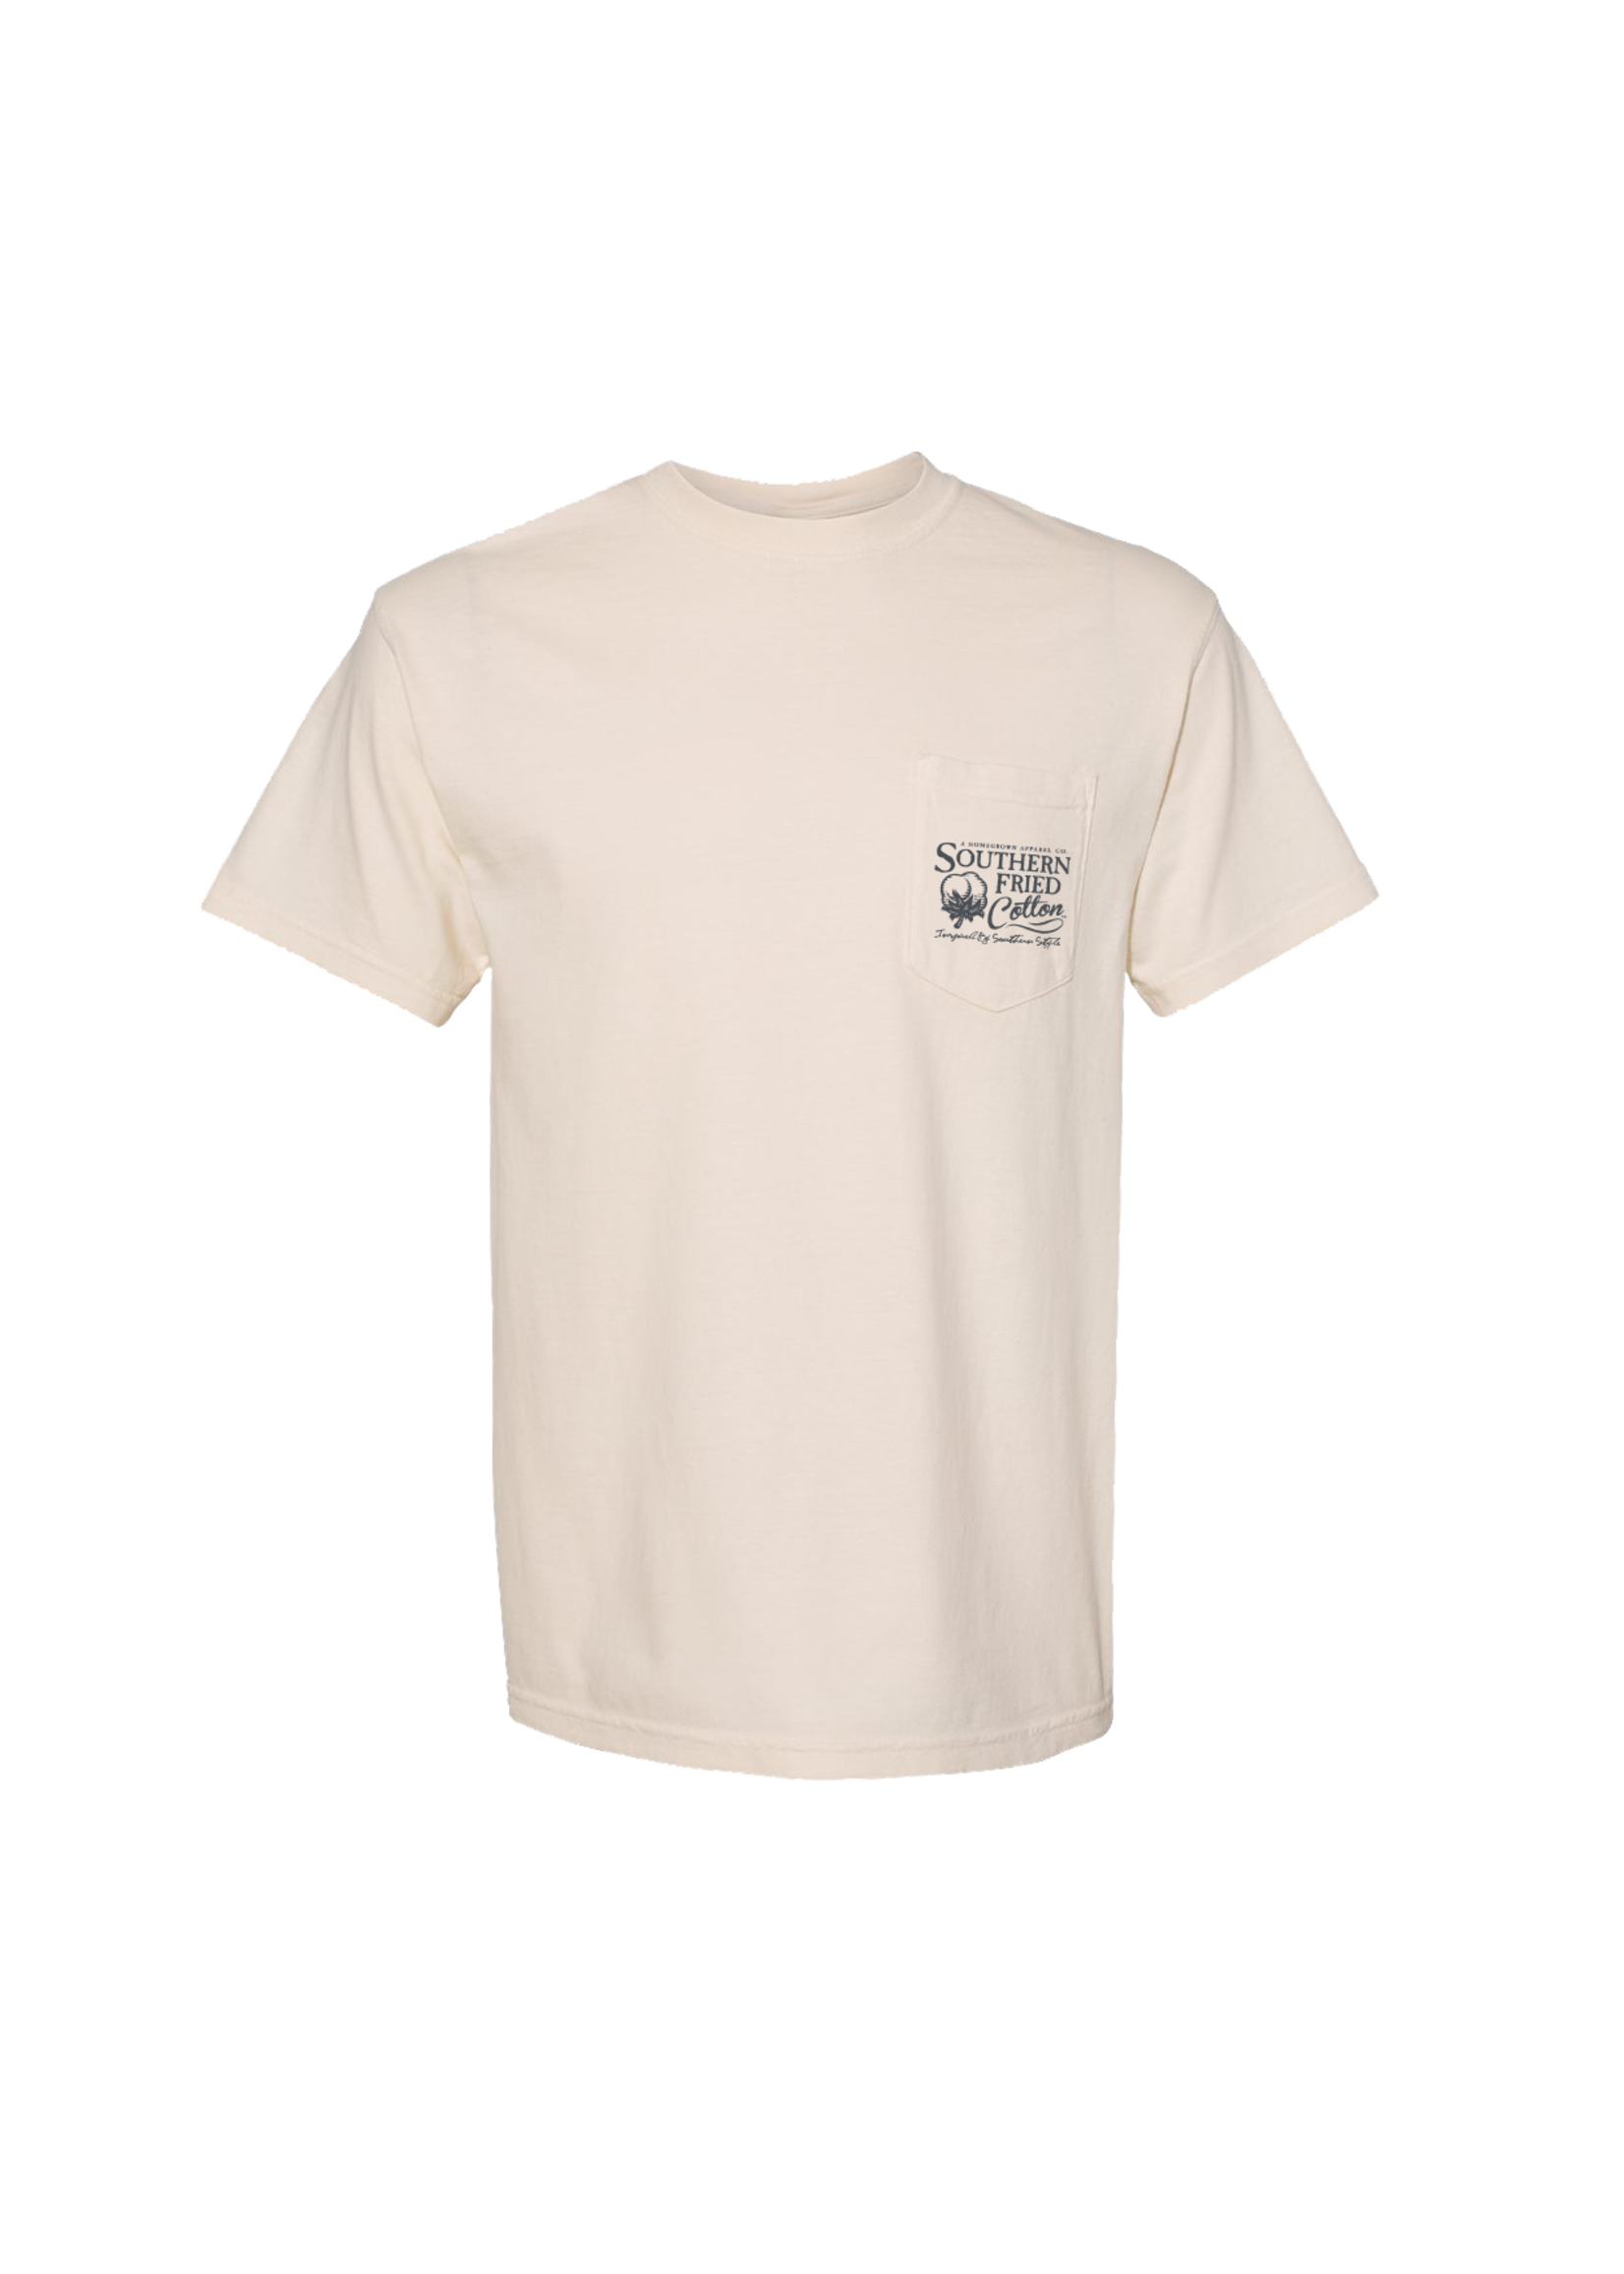 Southern Fried Cotton Duck Silhouettes Short Sleeve T-Shirt